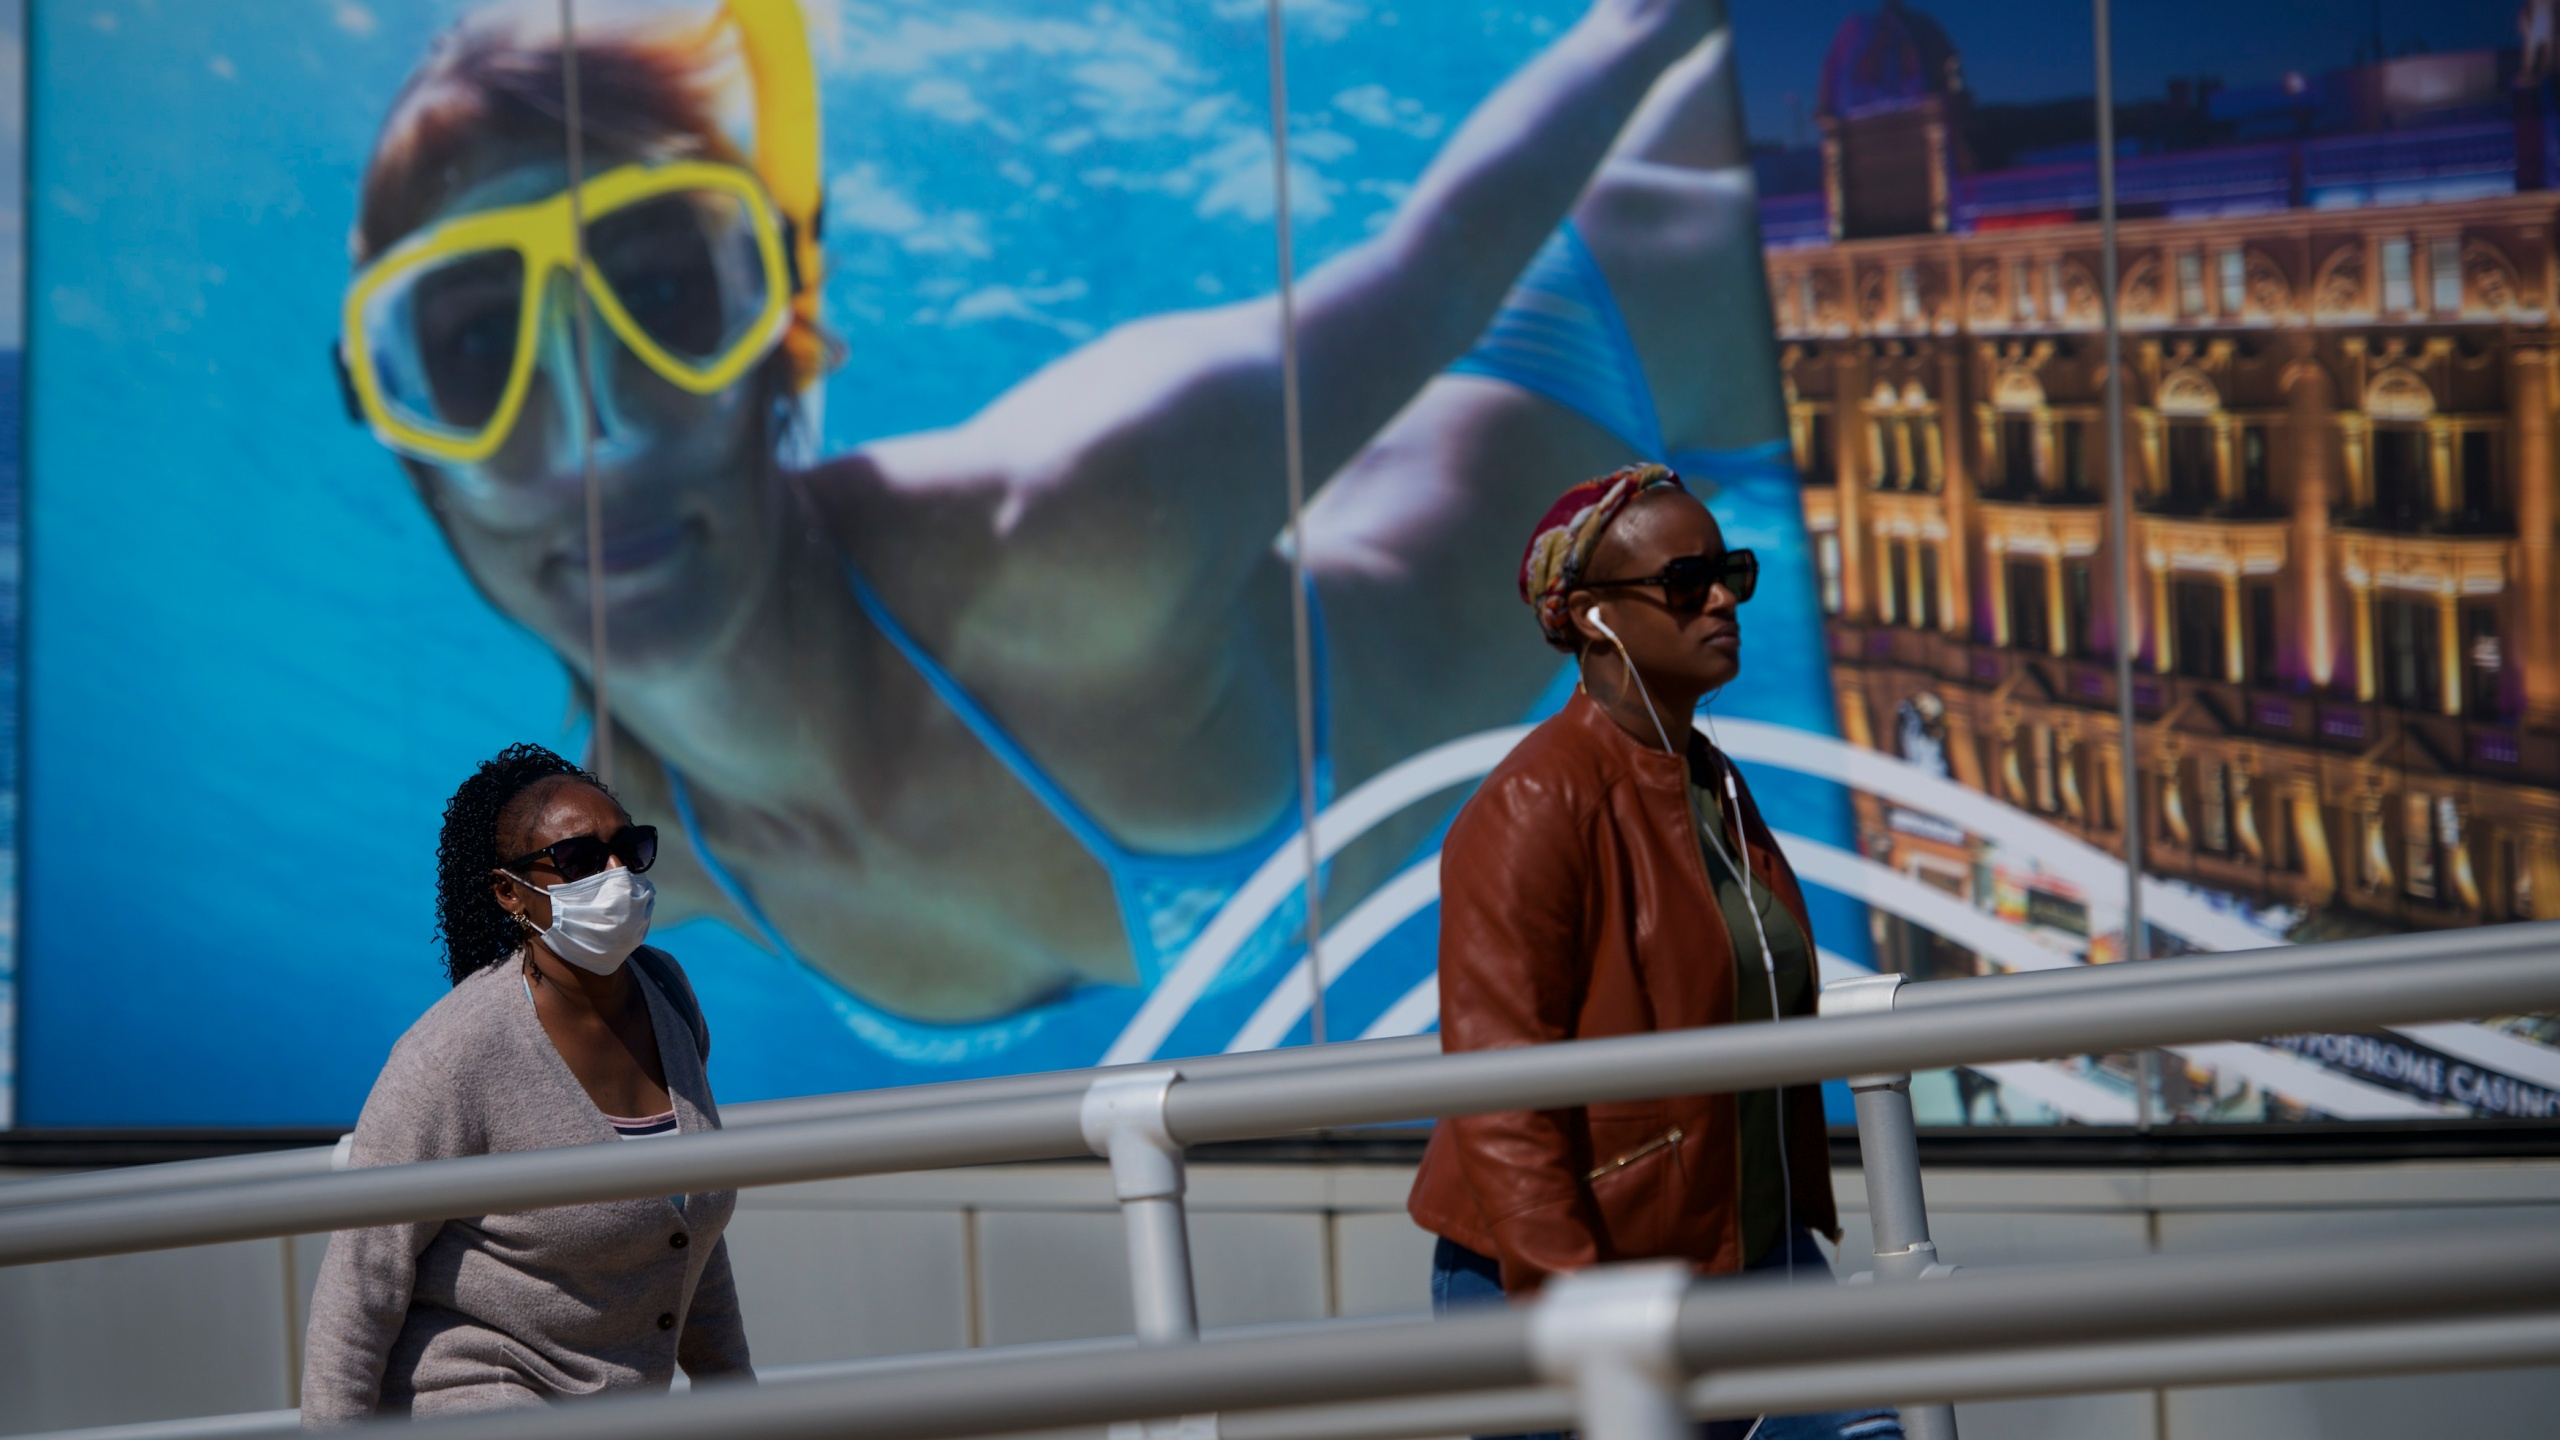 A pedestrian wears a mask while walking past a casino scuba diving poster during the coronavirus pandemic on May 7, 2020, in Atlantic City, New Jersey. (Mark Makela/Getty Images)